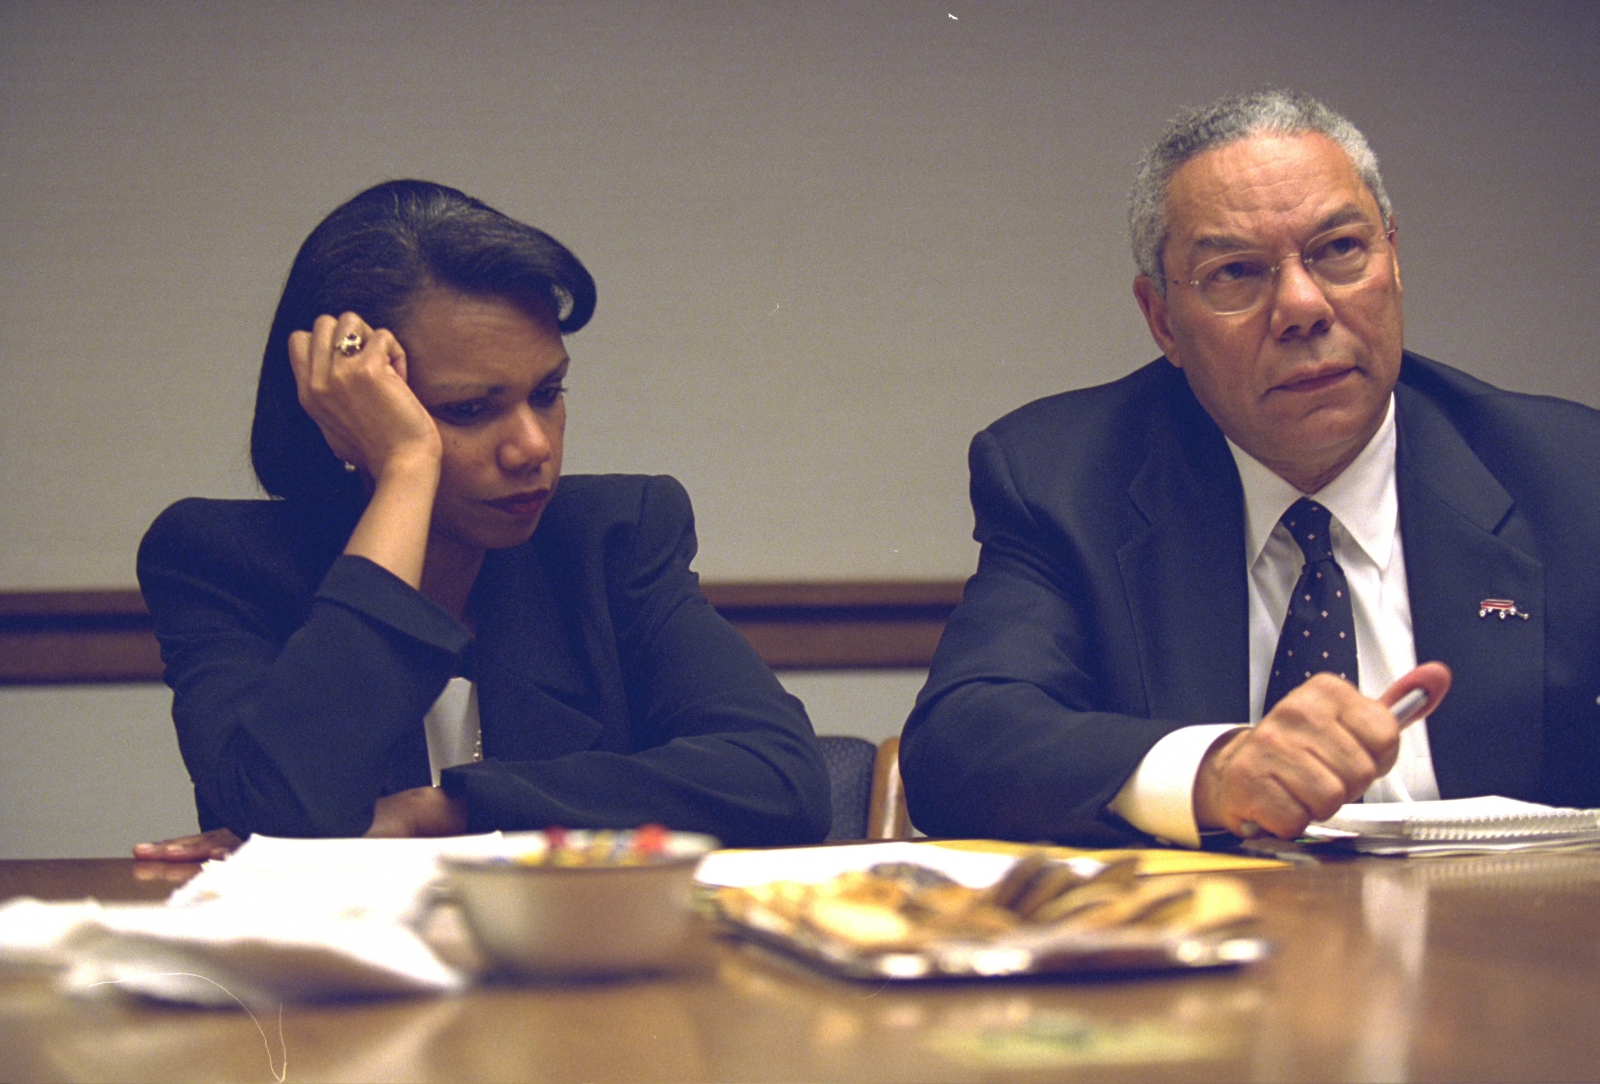 9/11: Condoleezza Rice and Colin Powell